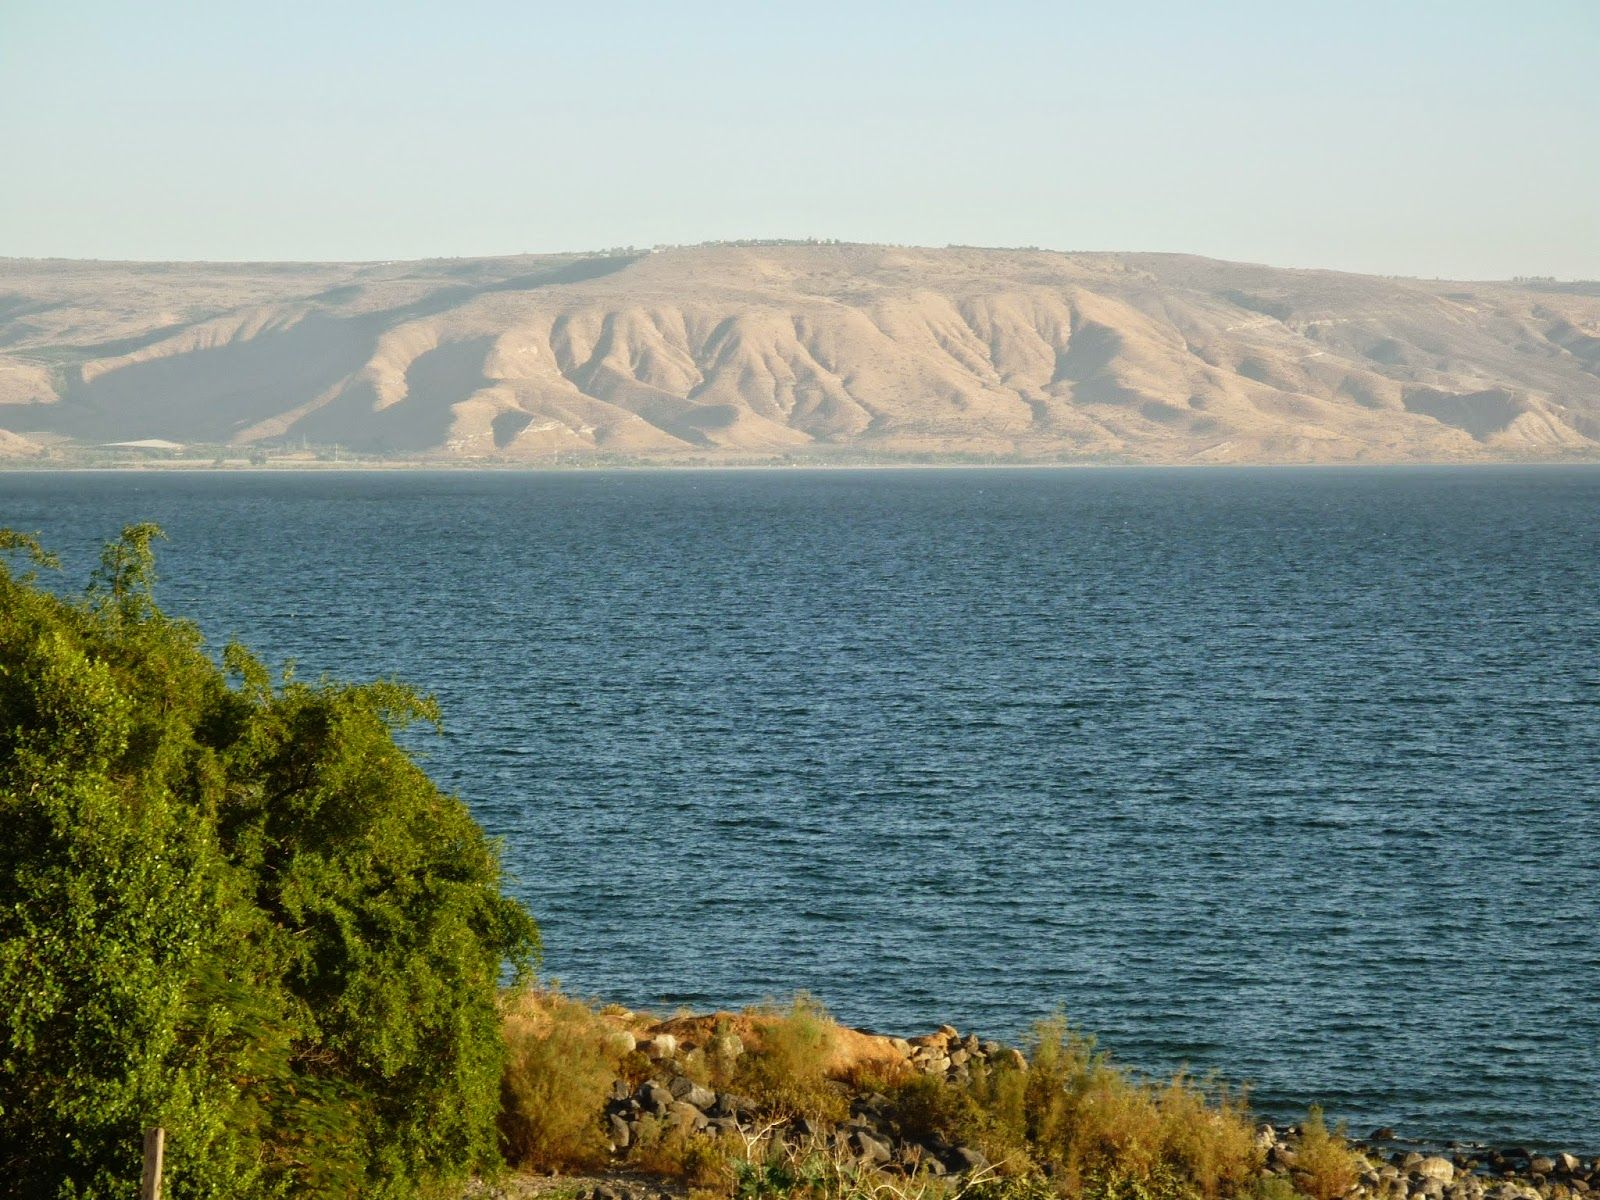 Sea of Galilee Wallpapers   Top Sea of Galilee Backgrounds 1600x1200